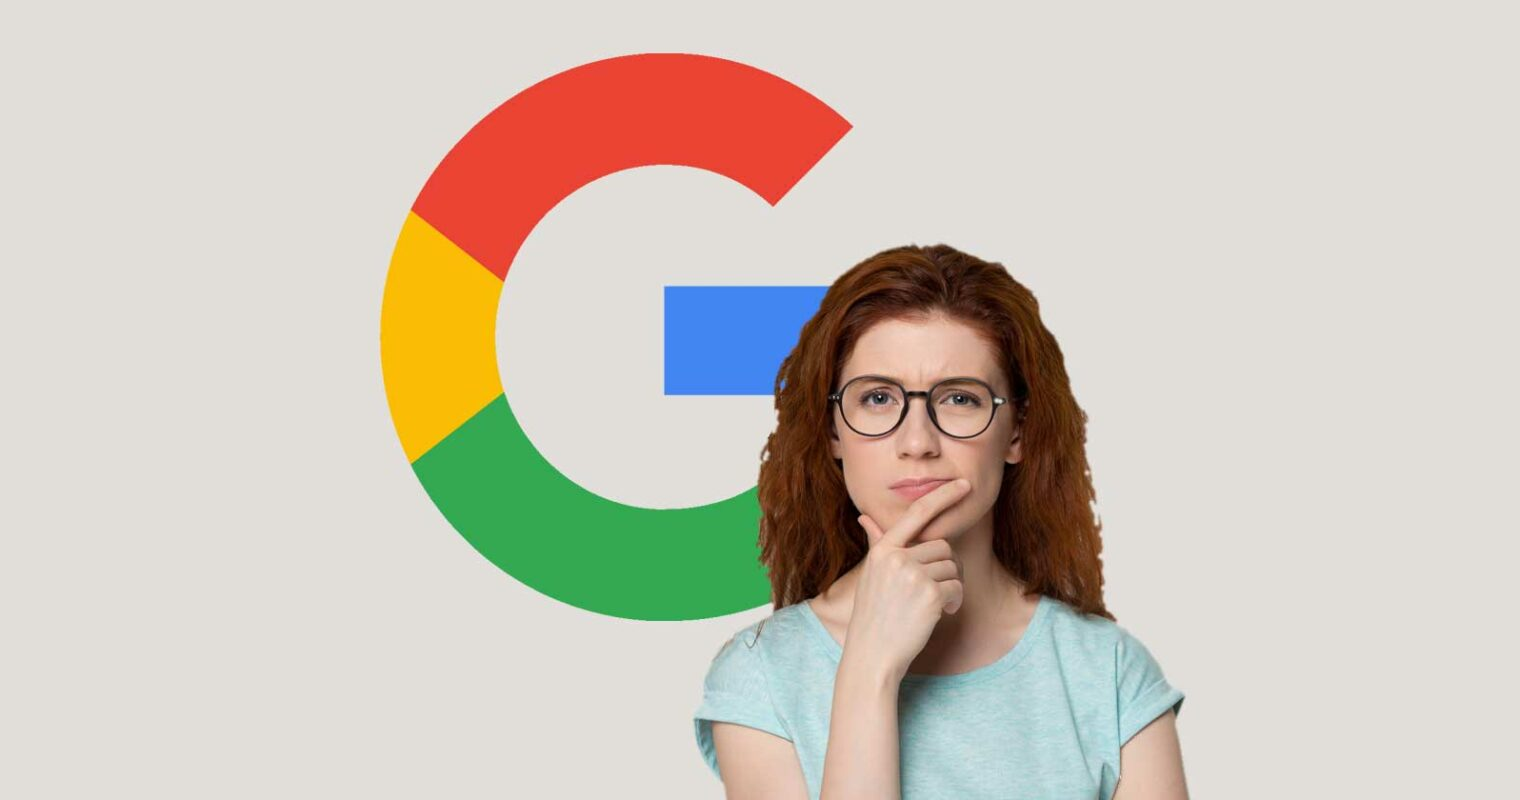 Google Ads Salesperson Alleged to Link Organic Ranking to Ad Spend